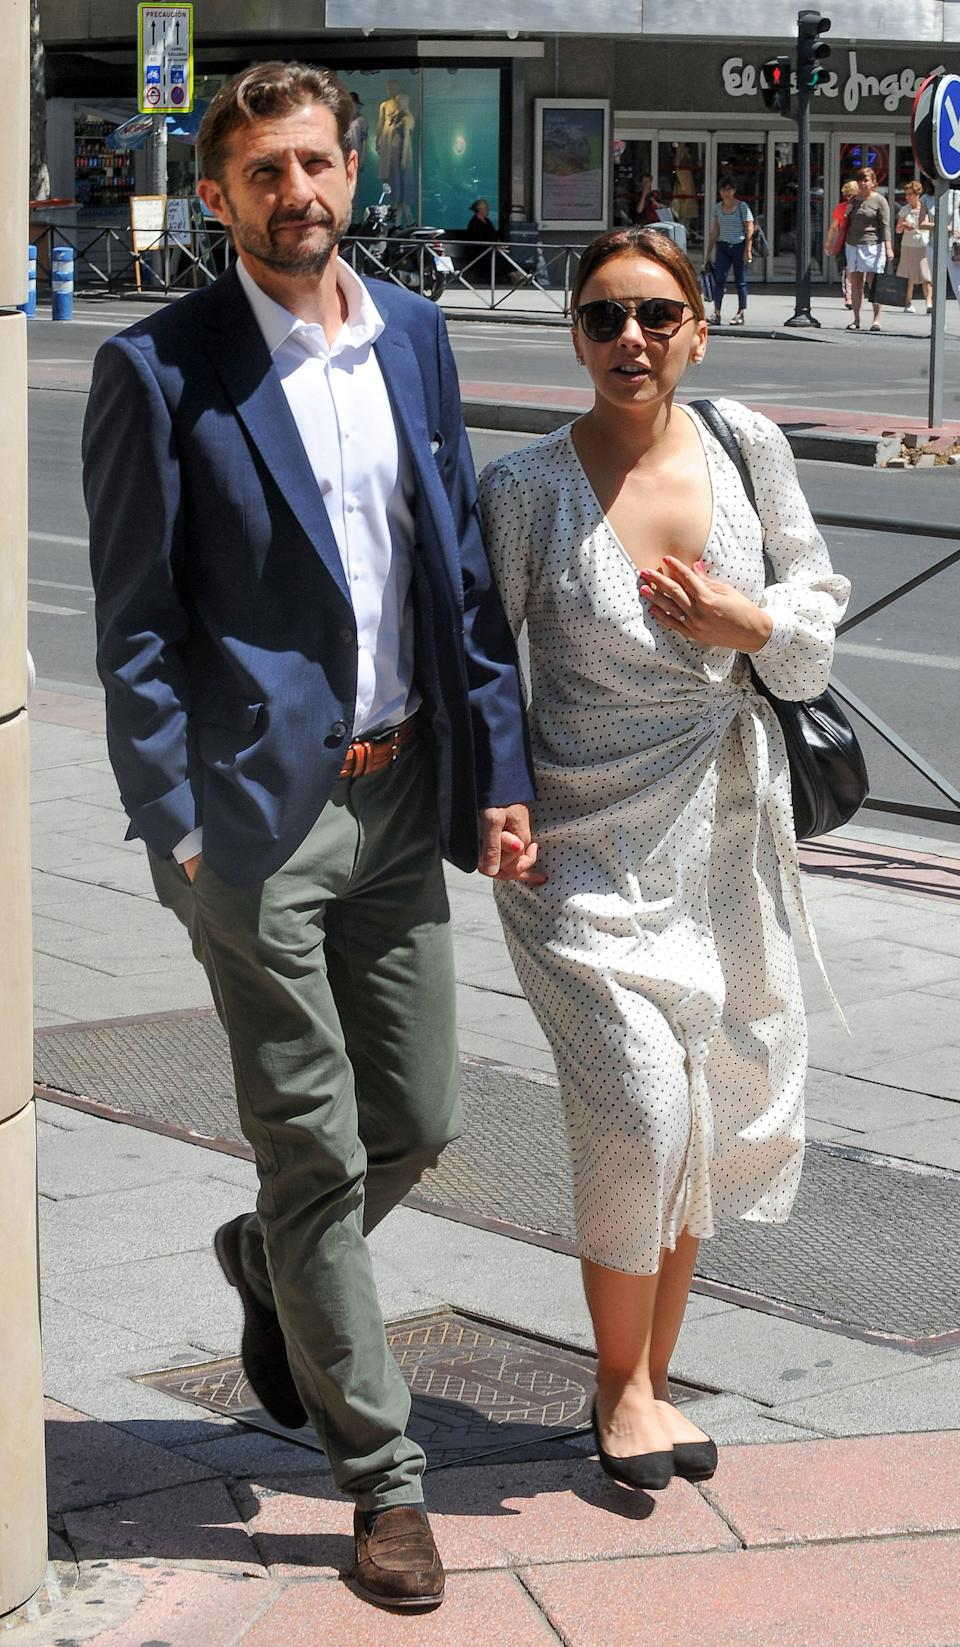 MADRID, SPAIN - JUNE 25: Chenoa and Miguel Sanchez Encinas are seen on June 25, 2019 in Madrid, Spain. (Photo by Europa Press Entertainment/Europa Press via Getty Images)